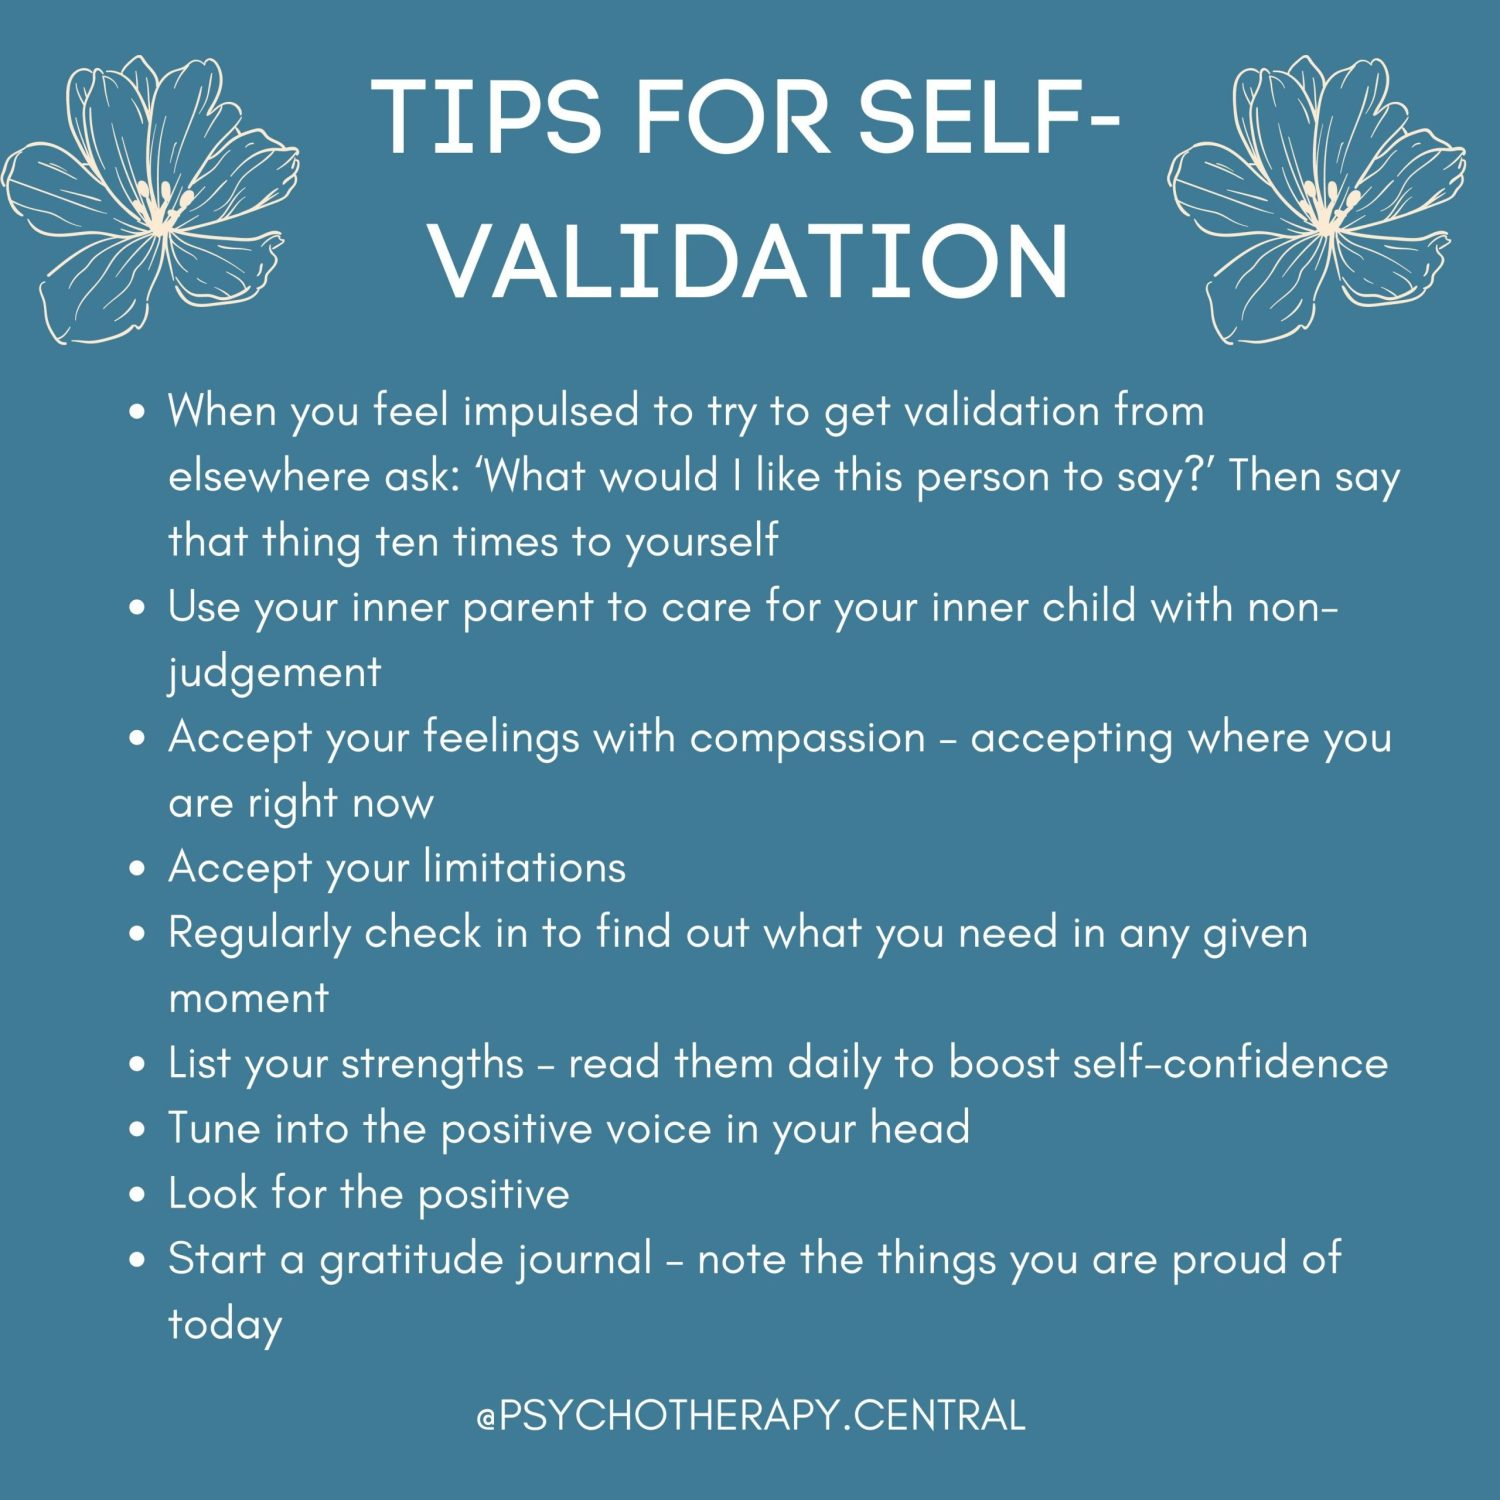 TIPS FOR SELF-VALIDATION